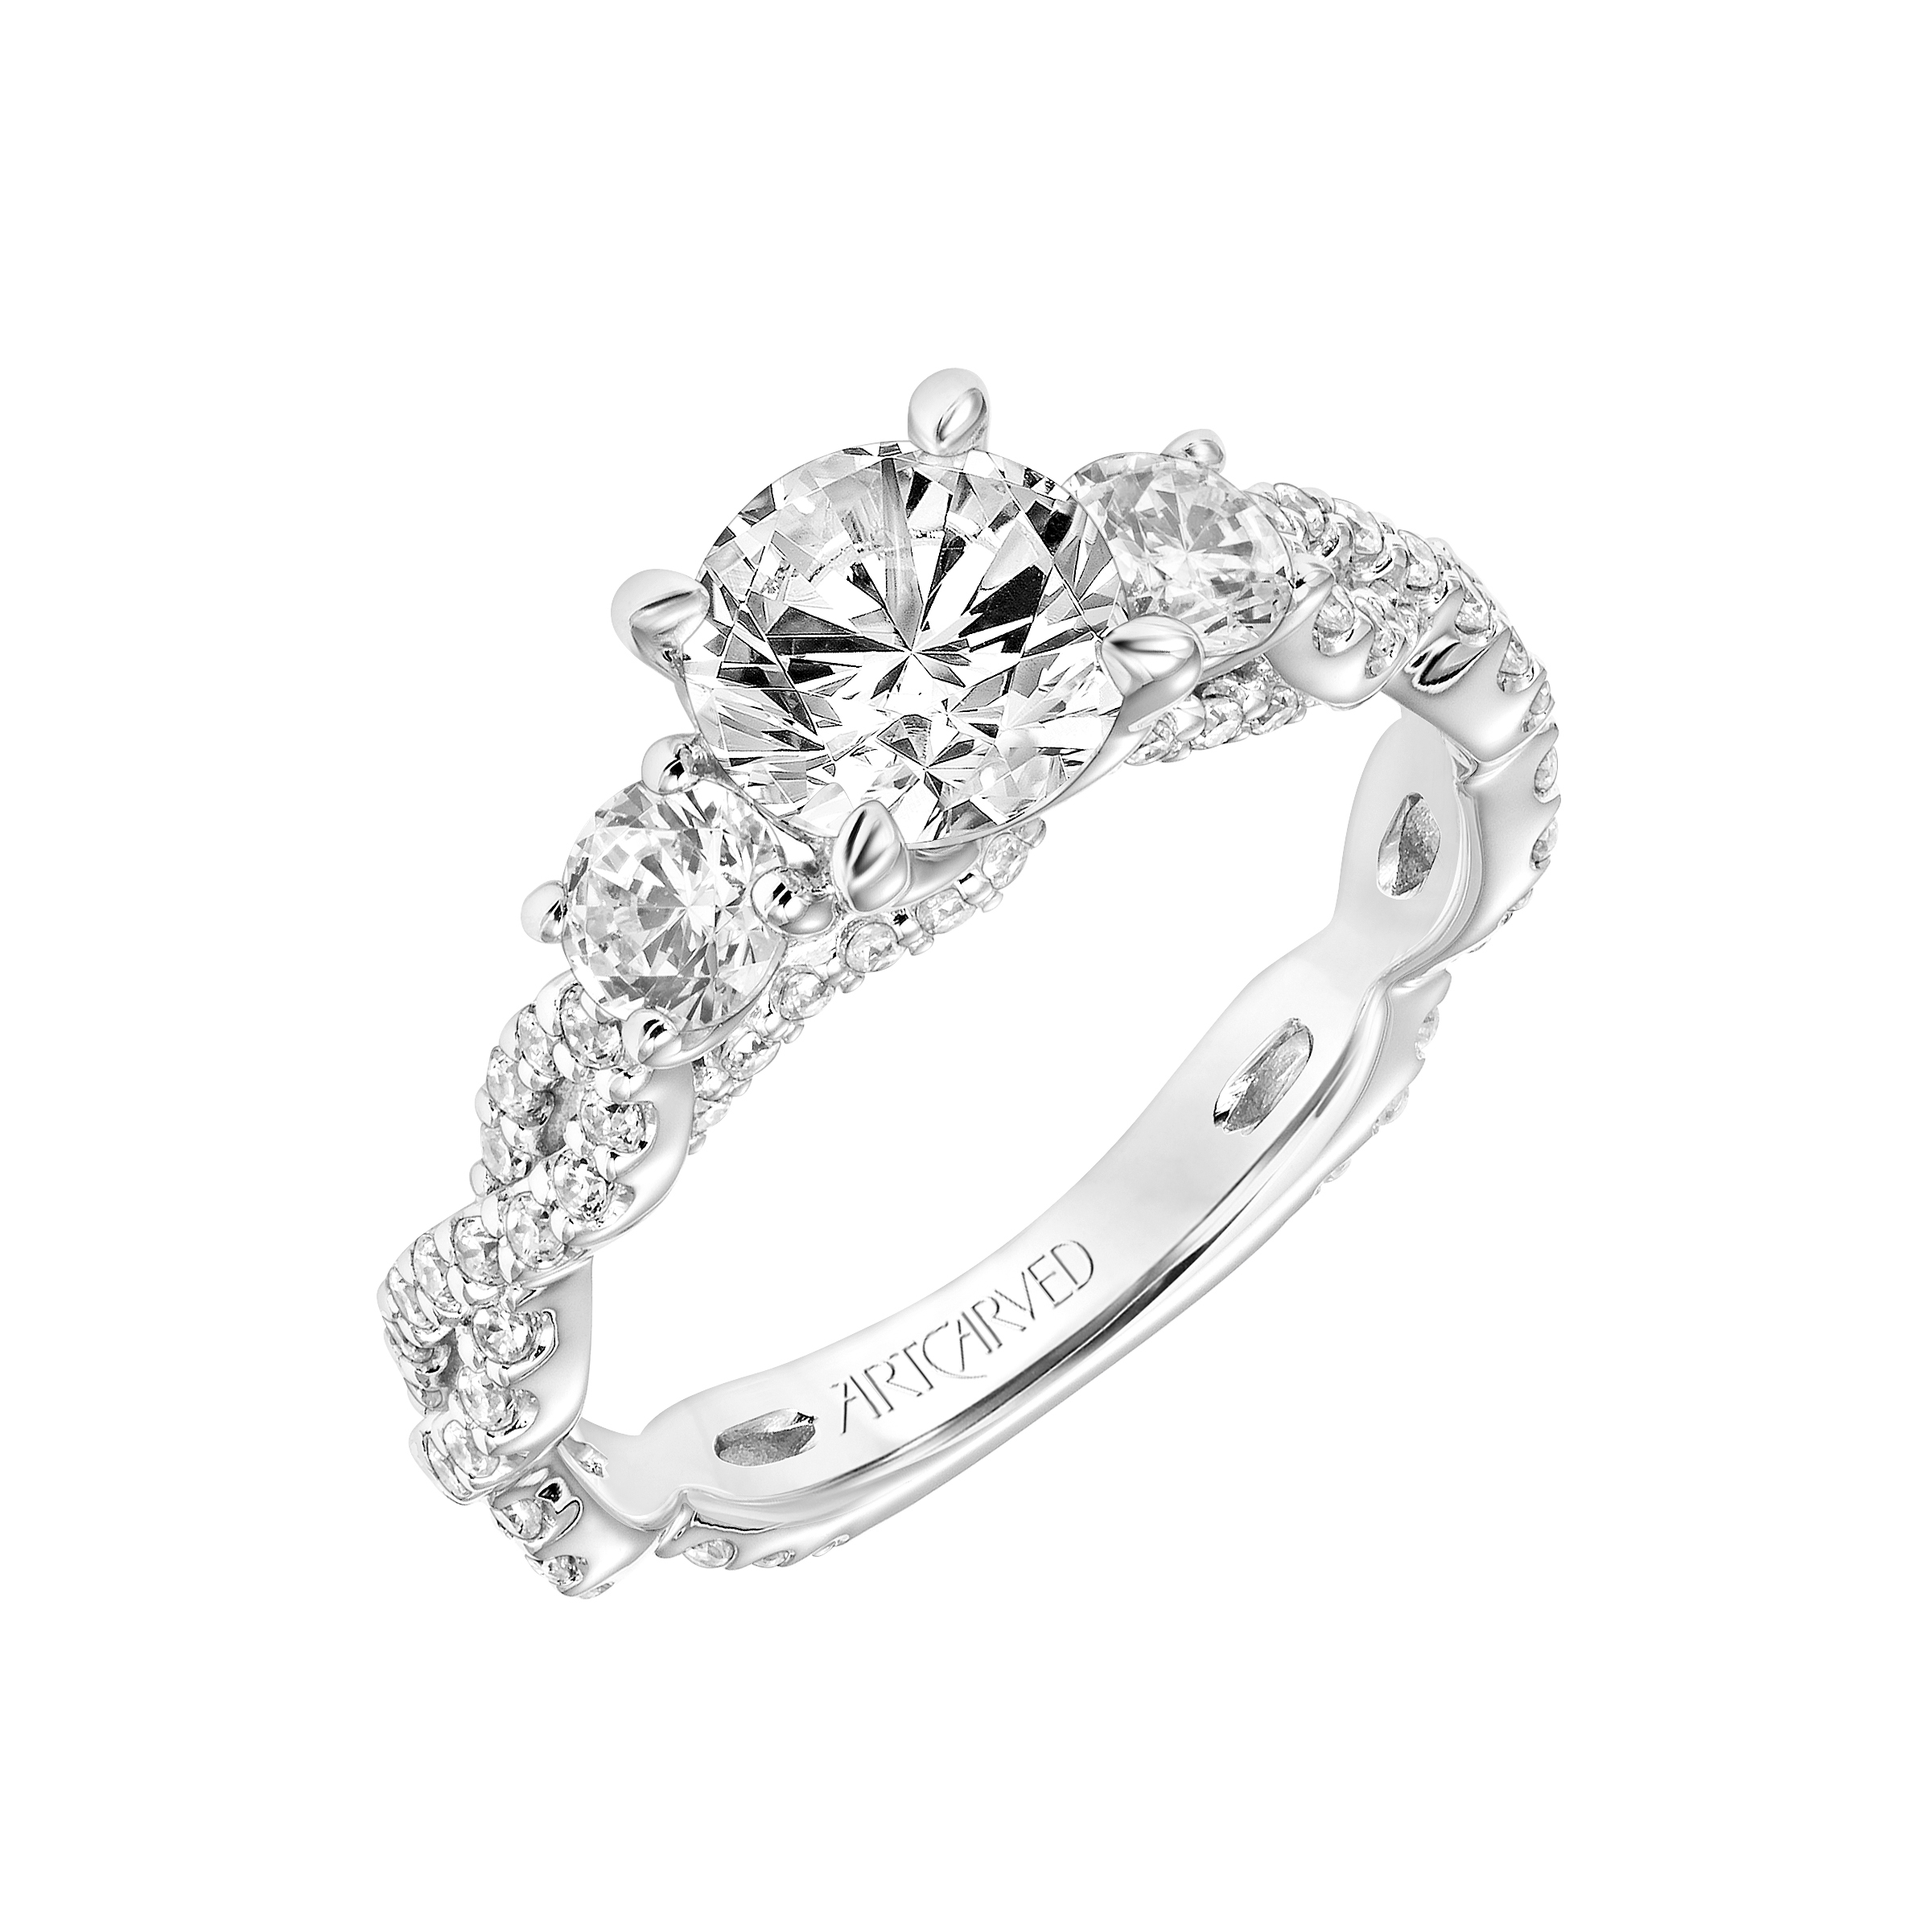 rings platinum kay for ring at engagement sale veg jewelry master scott id j fd carat diamond